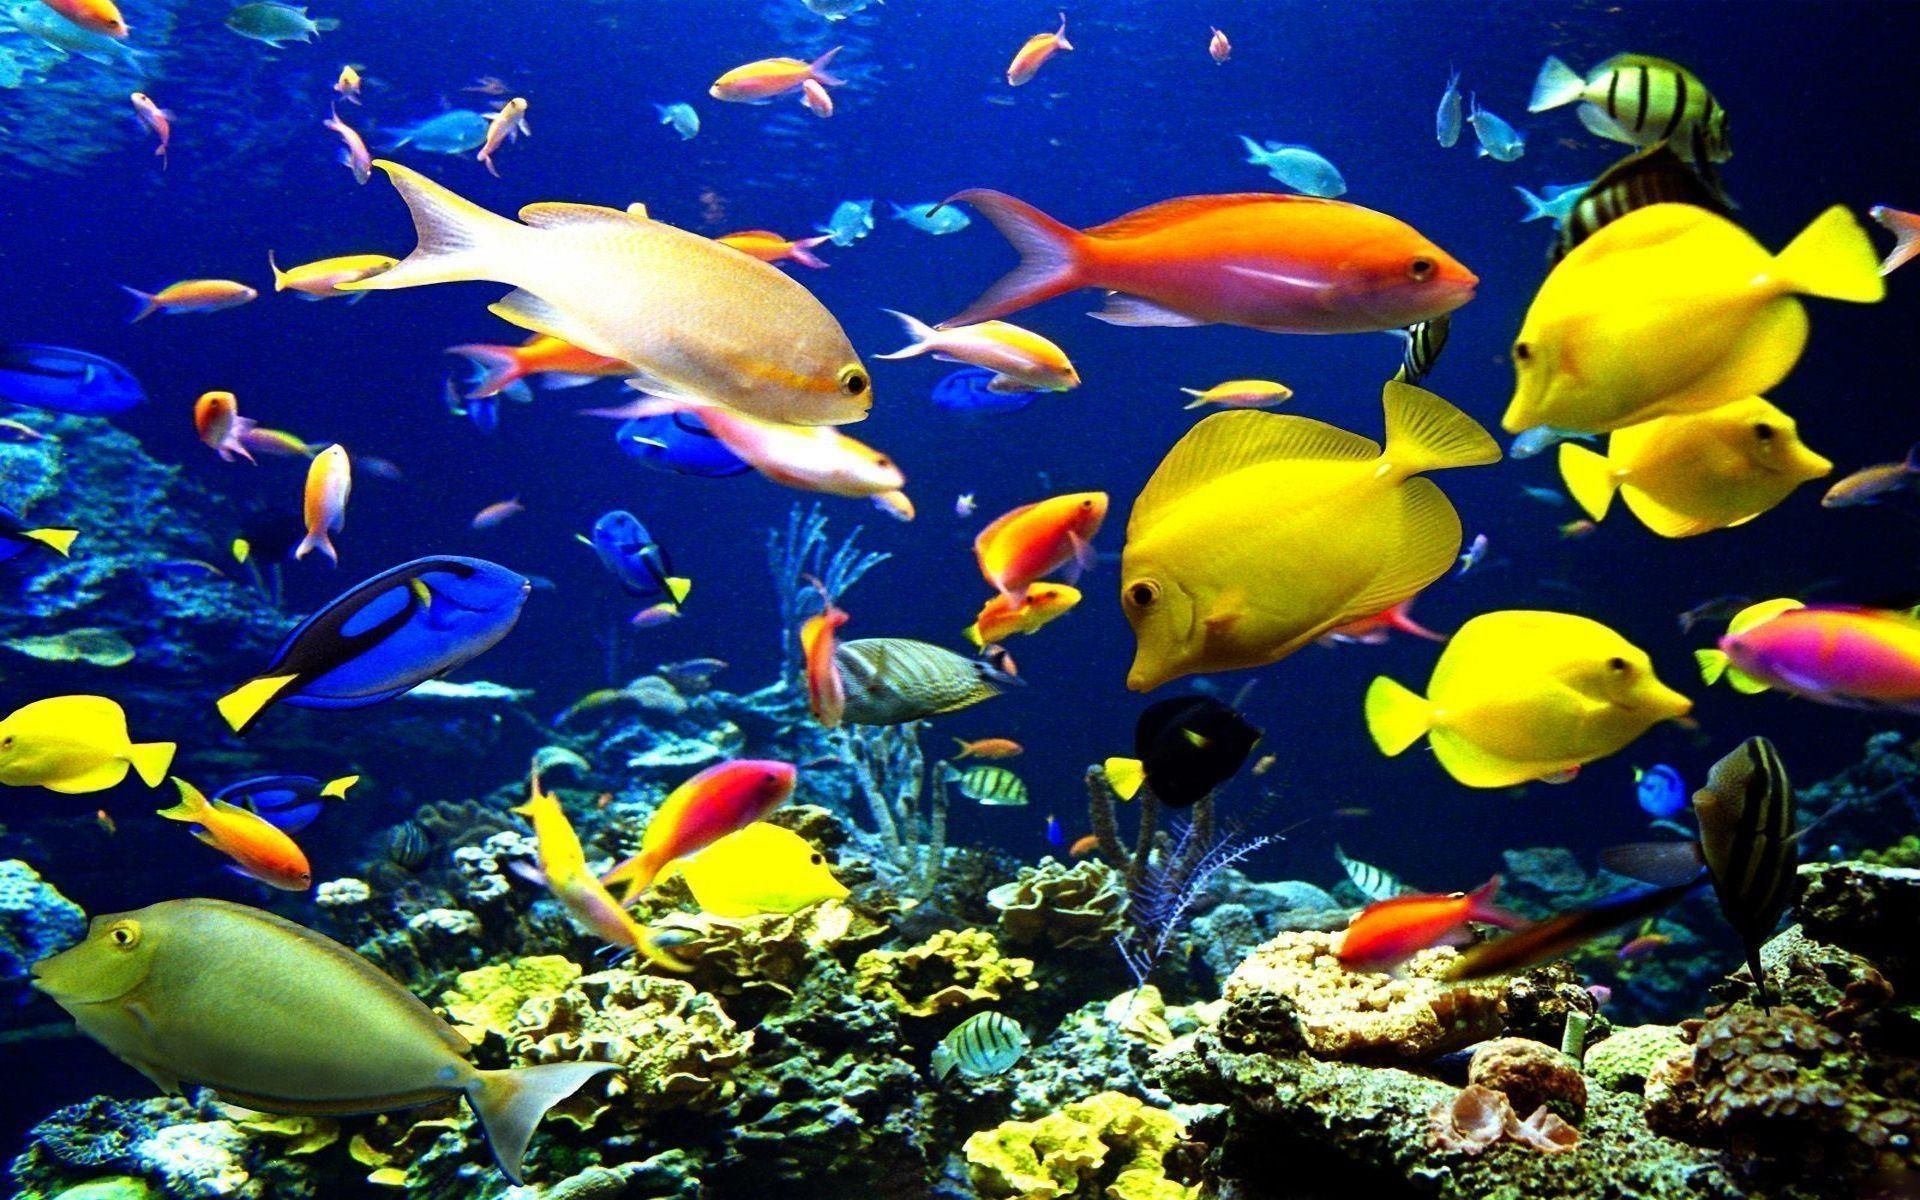 10 Most Popular Tropical Fishes Wallpapers Hd Full Hd 1920 1080 For Pc Background Fish Wallpaper Fish Background Tropical Fish